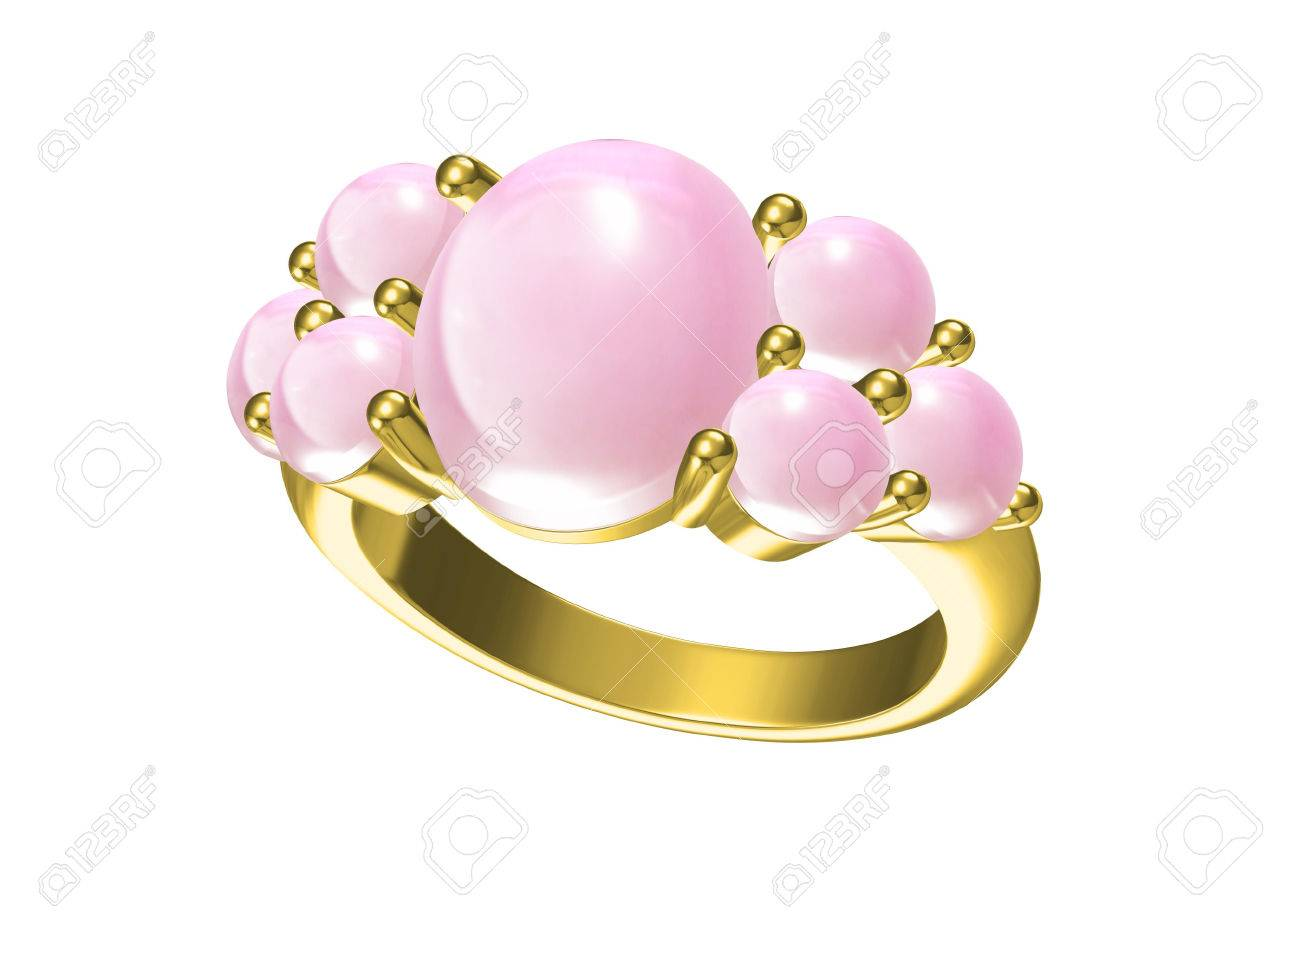 Wedding Ring. Sign Of Love. Fashion Jewelry Stock Photo, Picture And ...